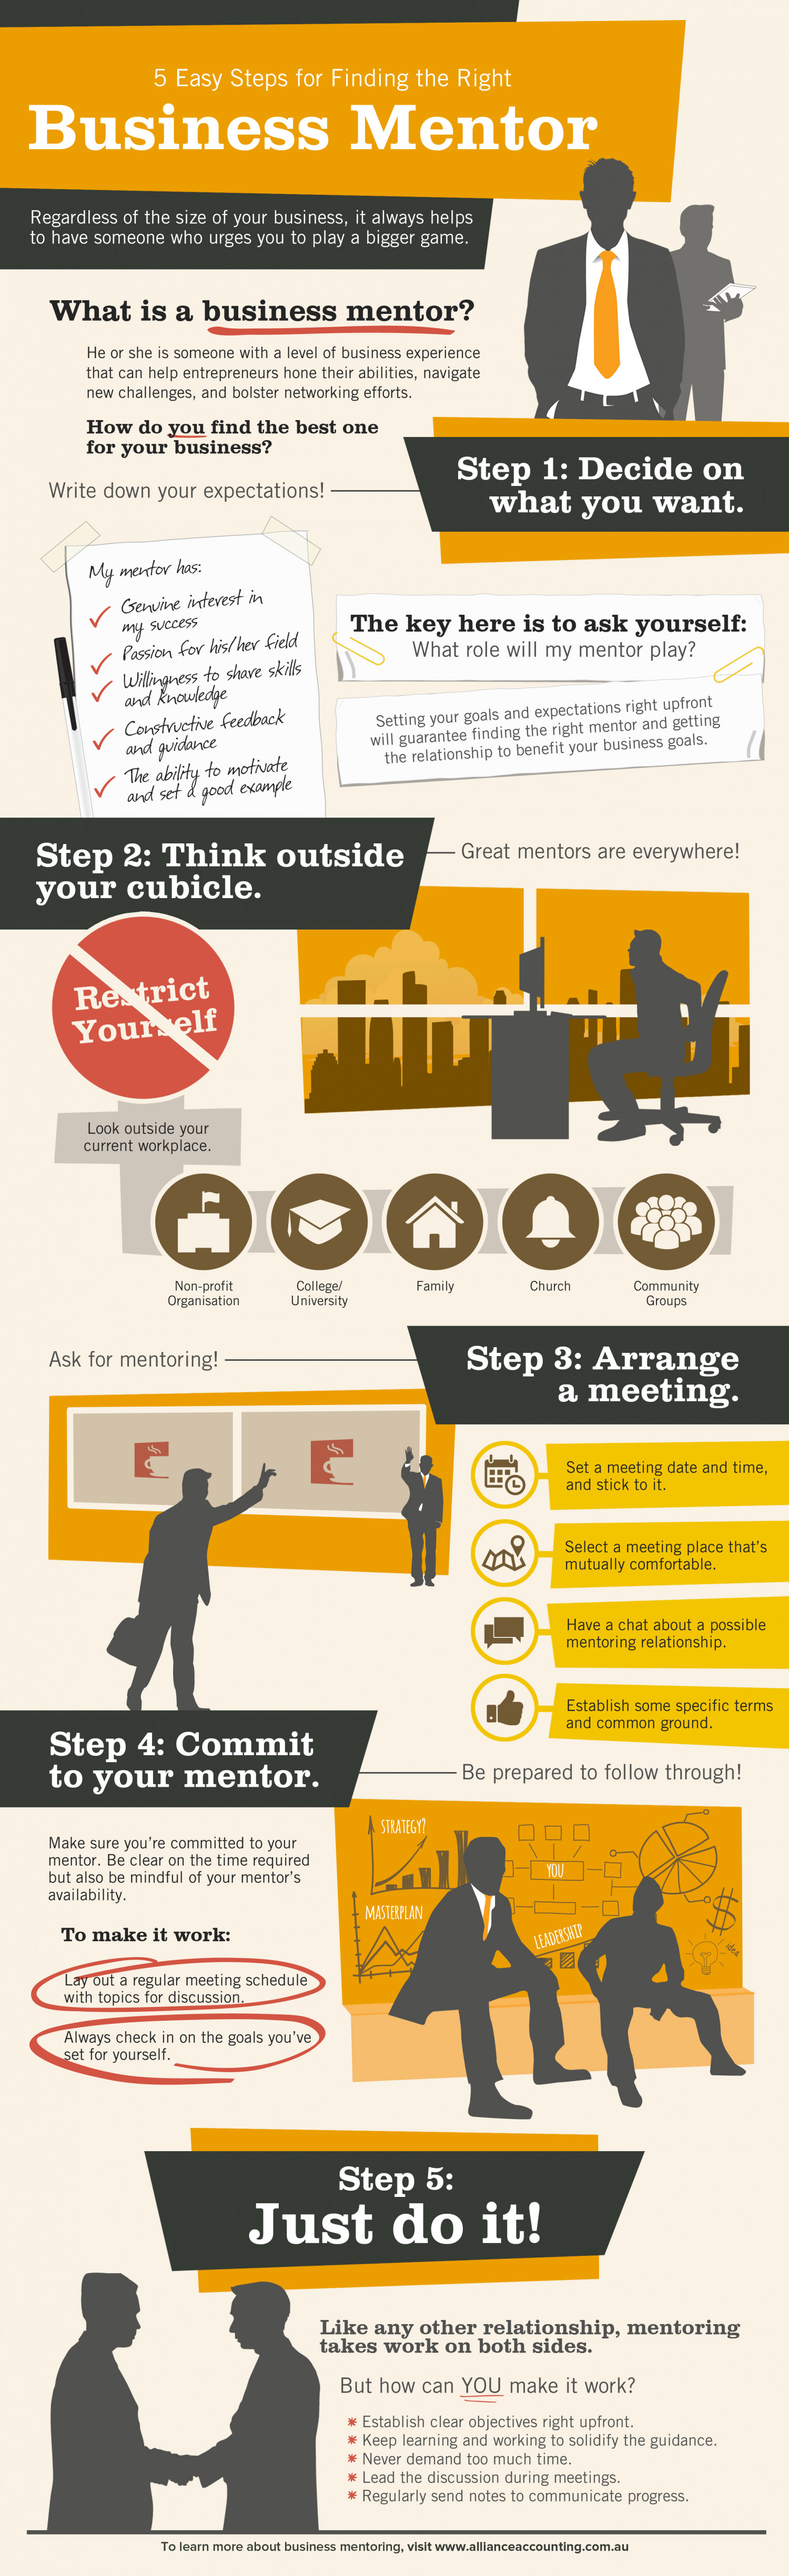 5 easy steps for finding the right business mentor visual ly 5 easy steps for finding the right business mentor infographic